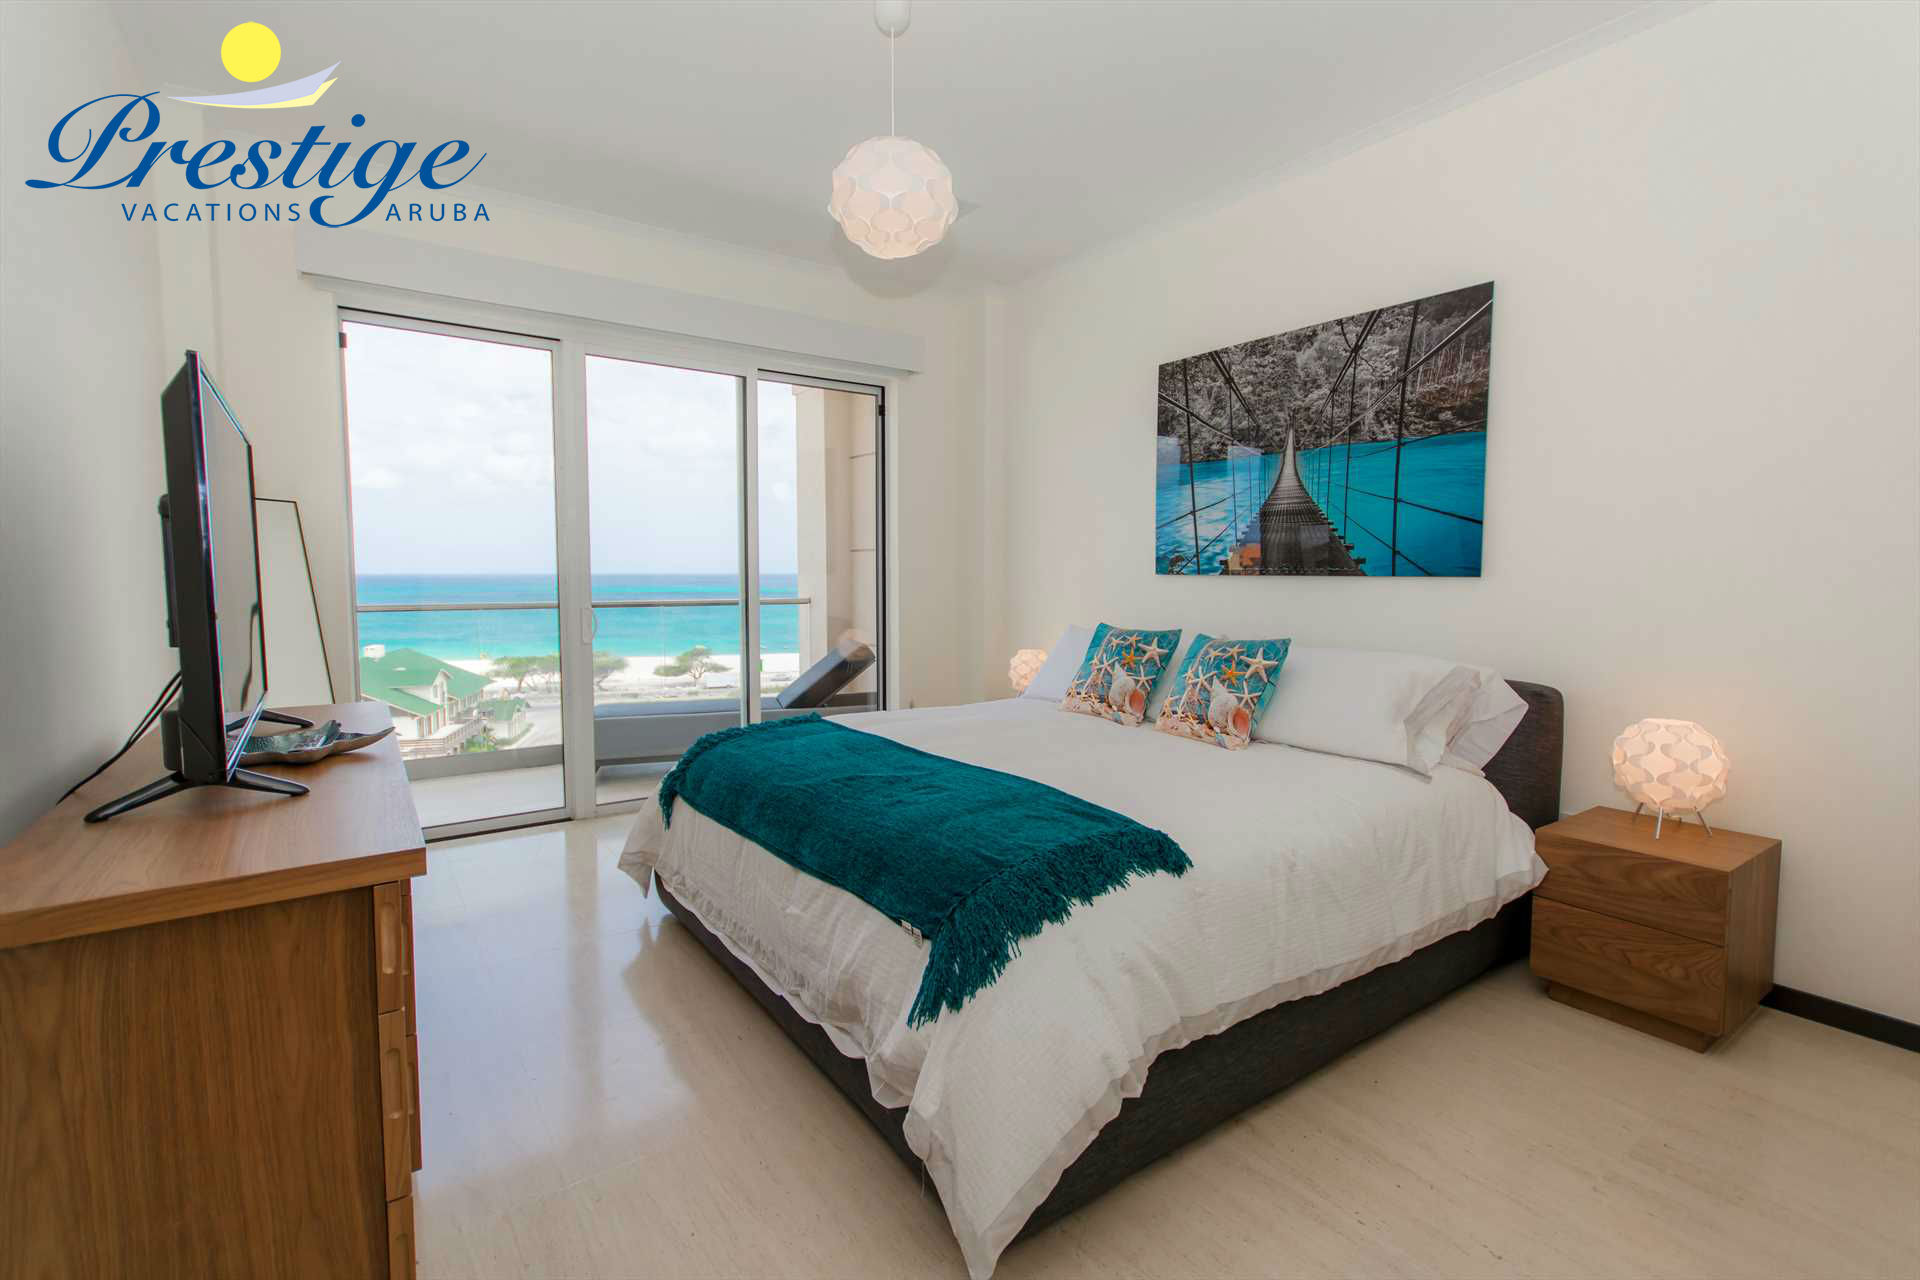 Master bedroom with king-size bed and access to the balcony